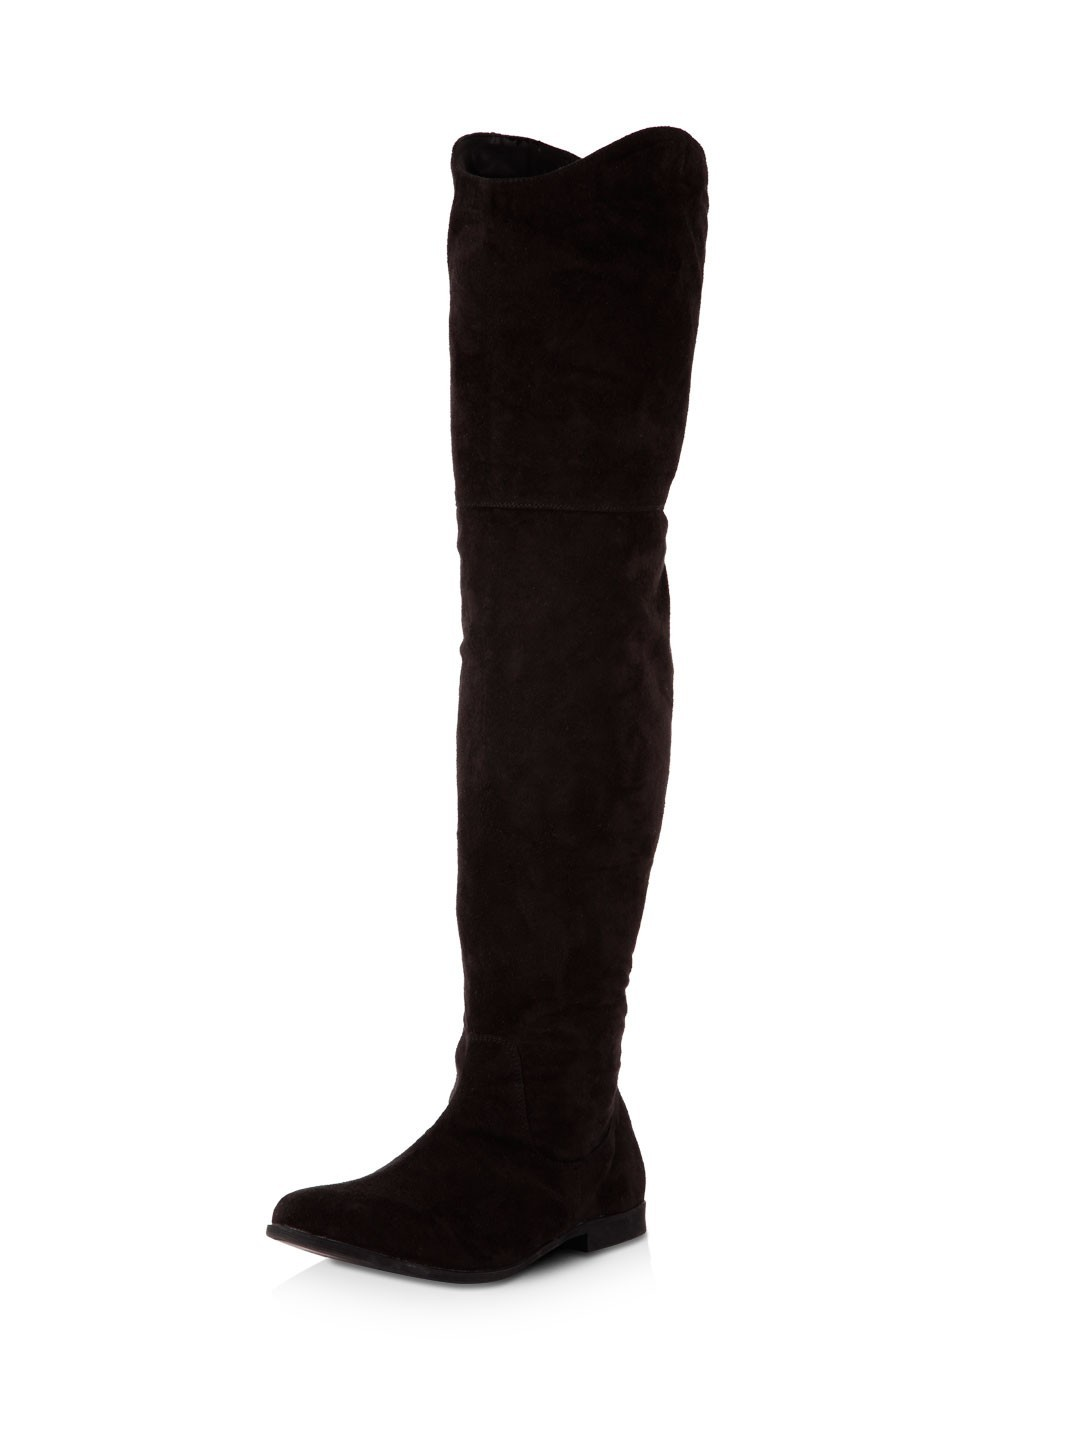 Simple Buy La Briza Brown Boots For Women Online India  Footprint360com